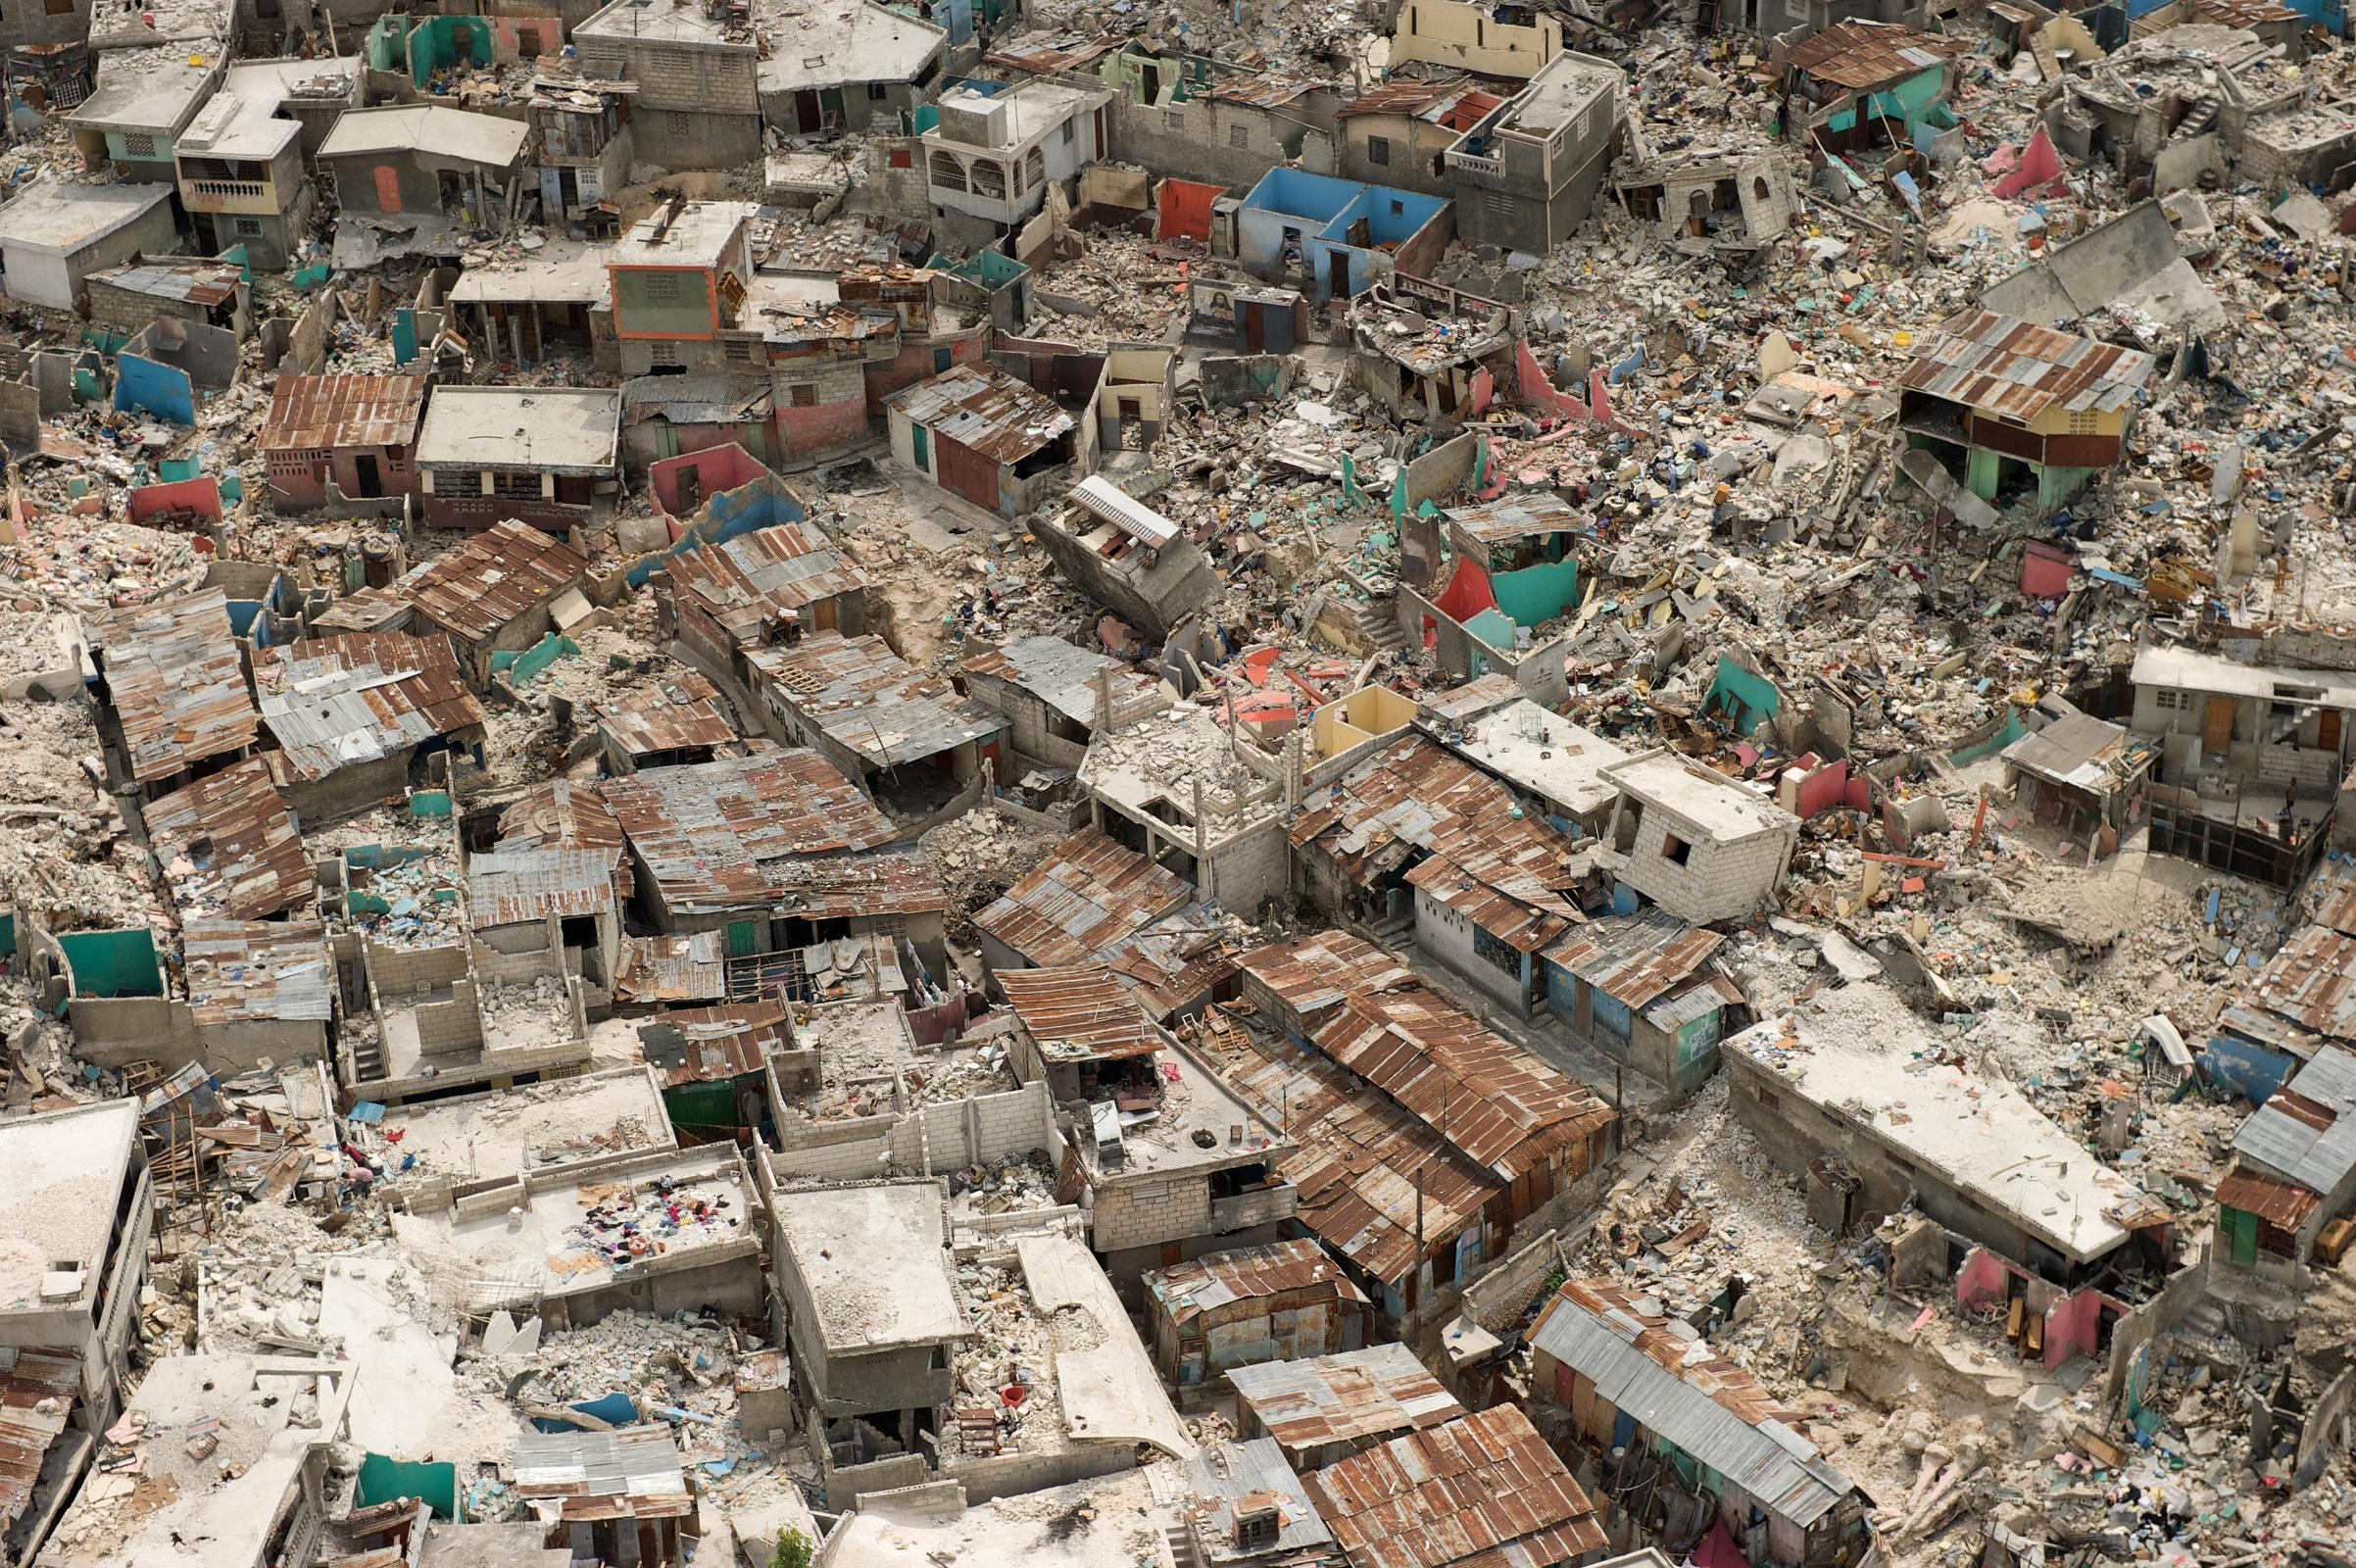 Aerial of Haitian Earthquake Destruction